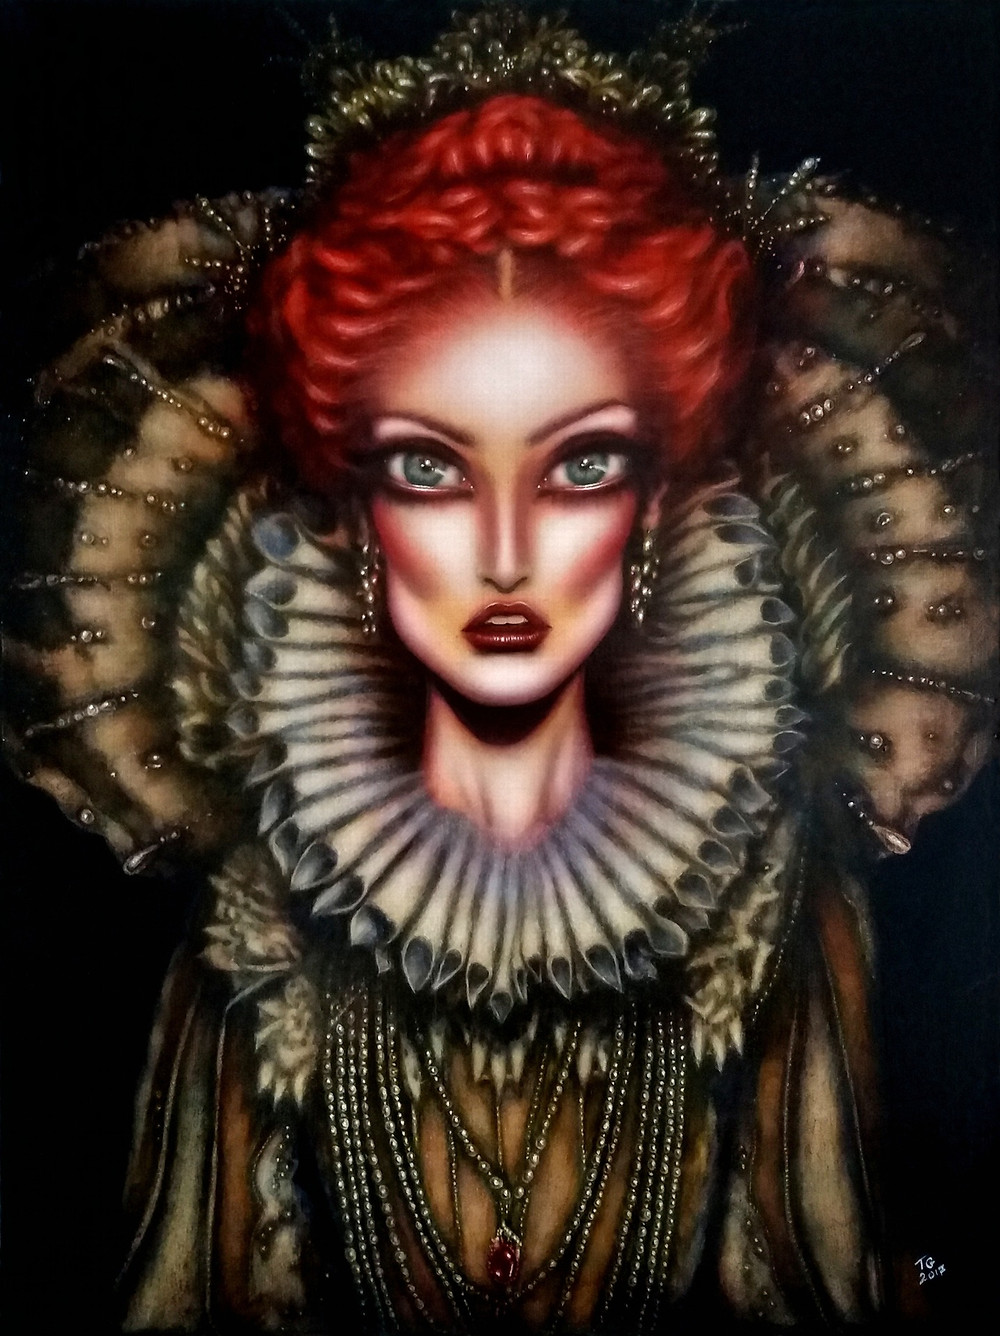 painting of Queen Elizabeth I with intense blue eyes a collar and pearls by tiago azevedo a lowbrow pop surrealism artist